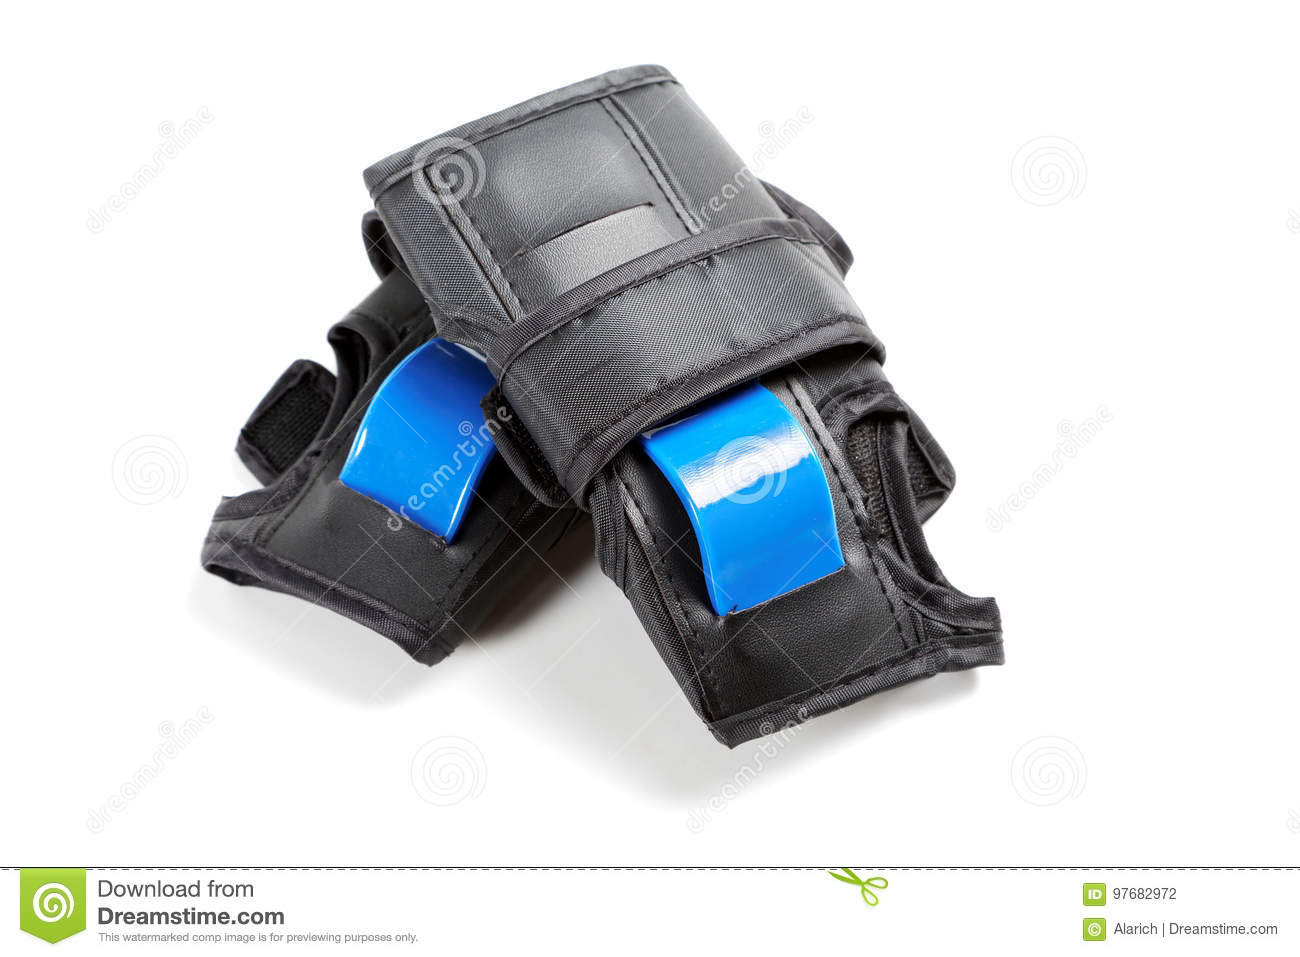 Protection for hands when riding a bicycle